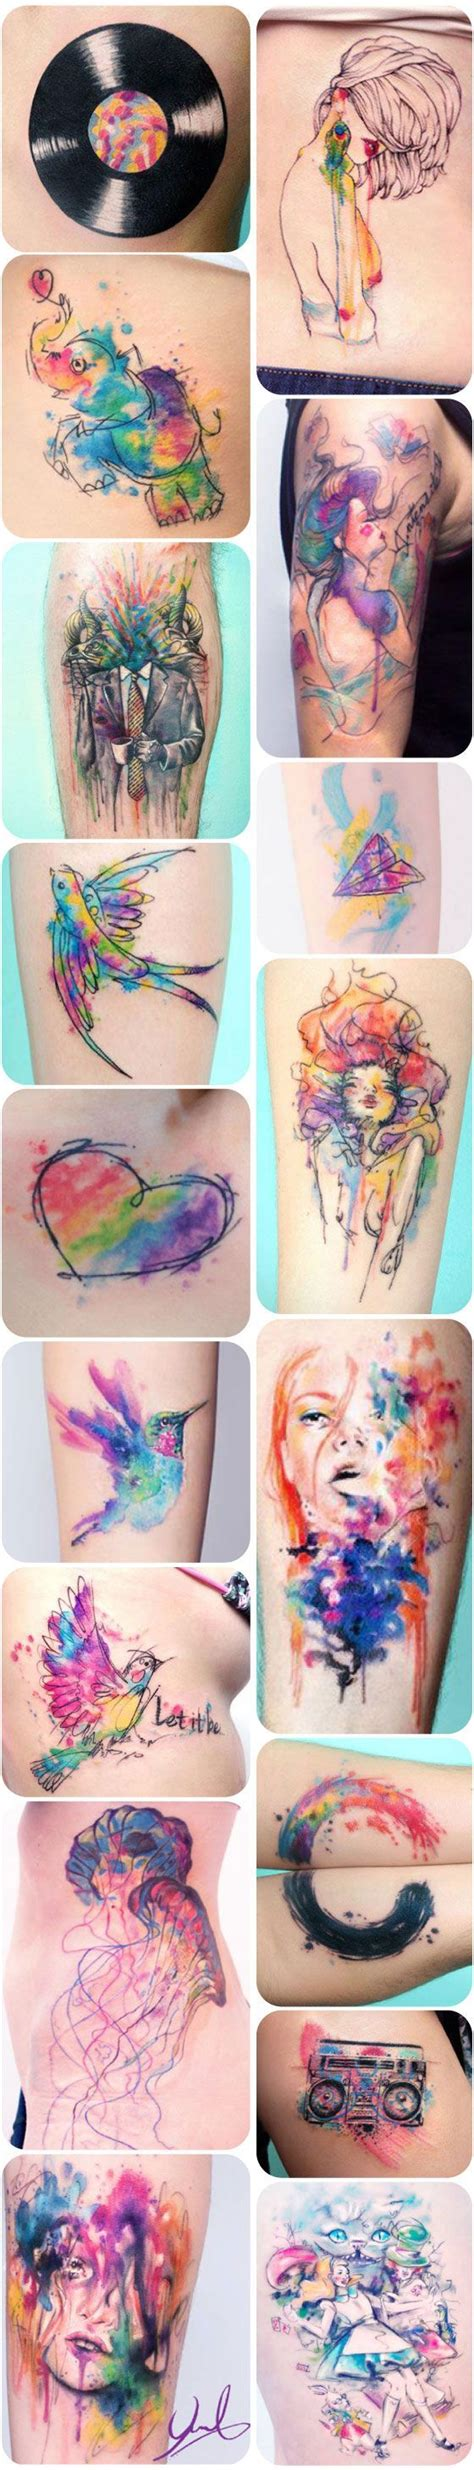 watercolor tattoo long term tattoos de candelaria carballo watercolors tattoos and